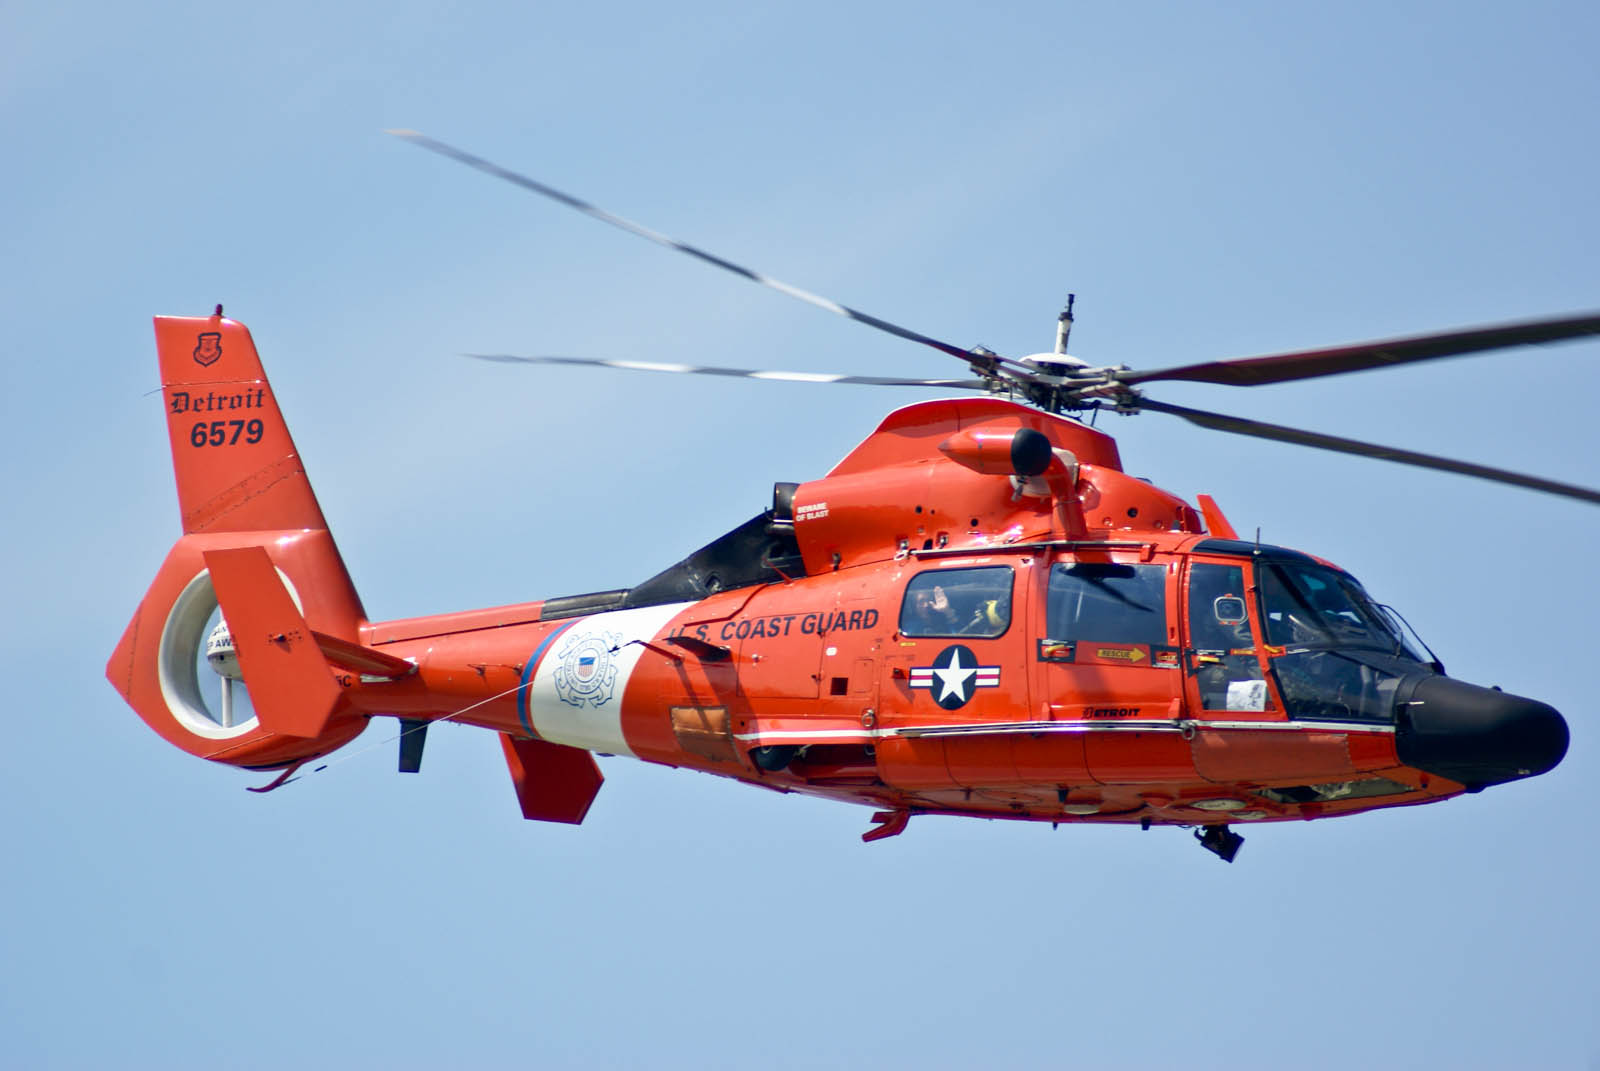 Michigan Coast Guard H-65 Dolphin Helicopter - Tail Number 6579 on ah-64 apache, uh-72a, ch-53e super stallion, eurocopter ec 135, eurocopter ec145, united states coast guard, eurocopter ec 155, agustawestland aw139, bell eagle eye, lockheed hc-130, sikorsky s-76, eurocopter x3, sikorsky hh-60 jayhawk, eurocopter dauphin, hh-60 pave hawk, agusta a109, kc-135 stratotanker, ch-47 chinook, uh-1 iroquois,